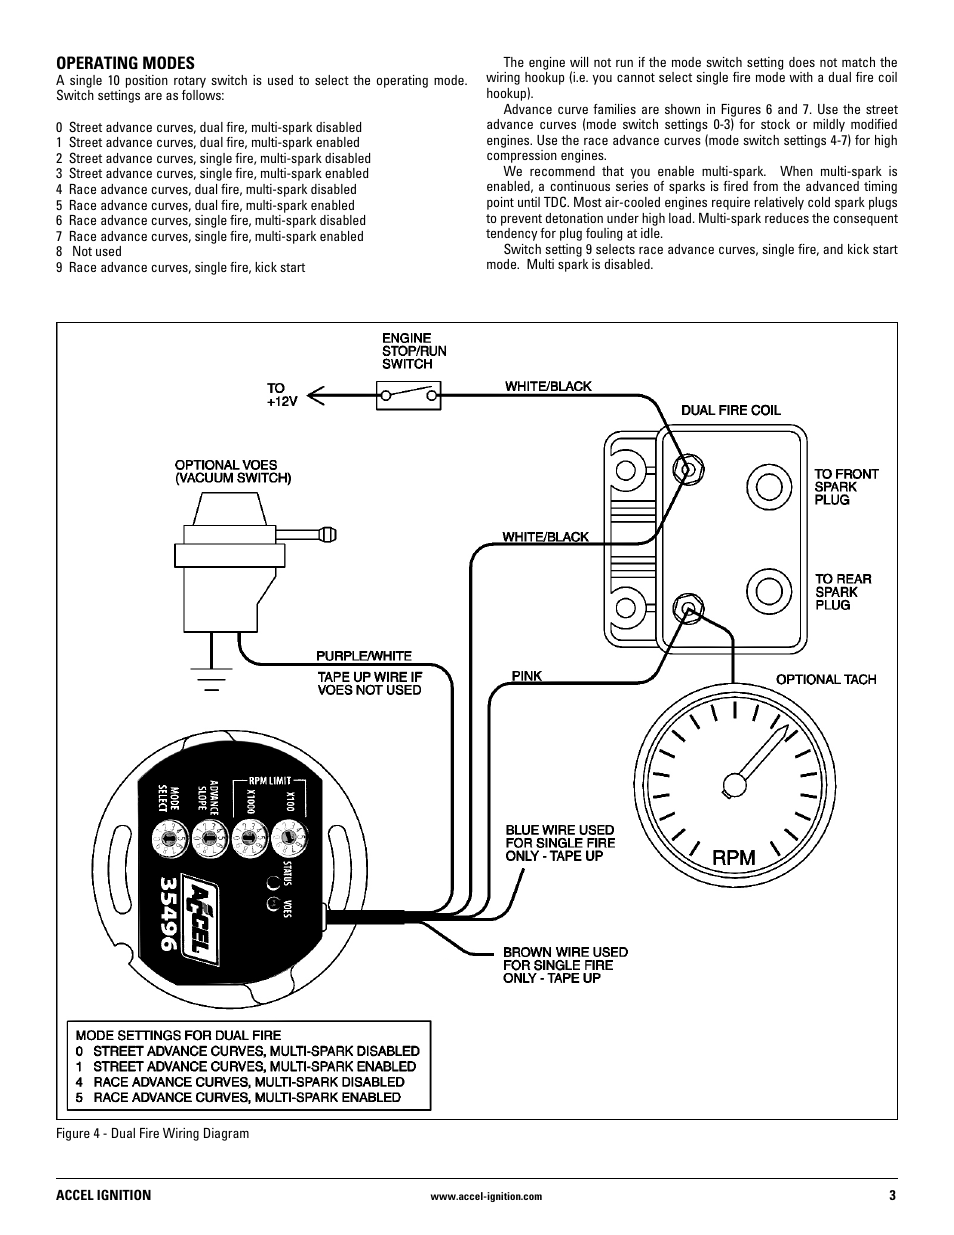 mallory ignition accel ignition 35496 page3?resize\\\\\\\\\\\\\\\=665%2C861 mallory unilite wiring diagram tamahuproject org mallory dist wiring diagram at reclaimingppi.co